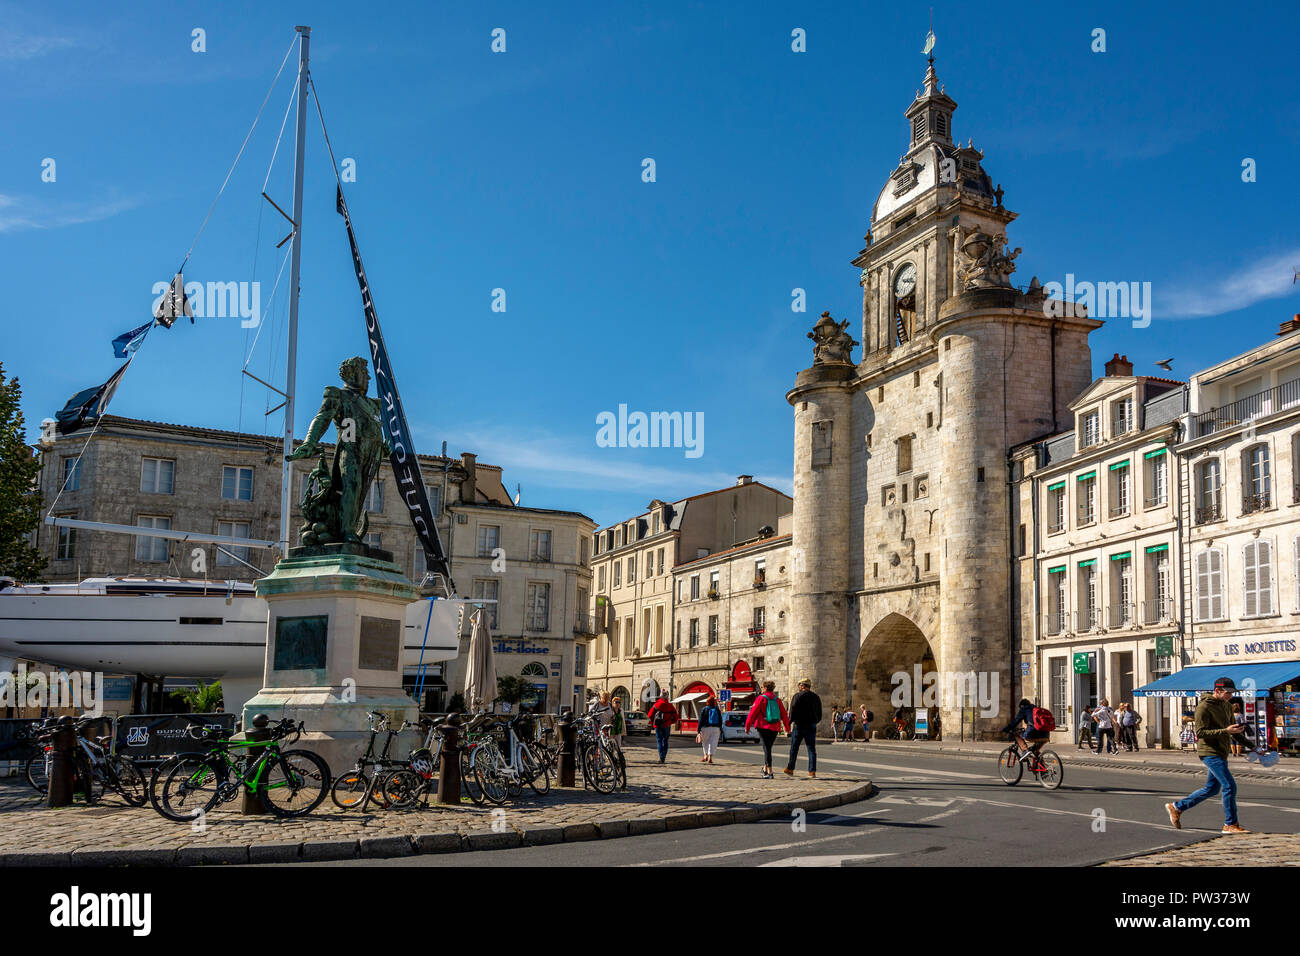 Statue of Admiral Duperré and The great Clock Tower of la Rochelle, Charente Maritime, Nouvelle Aquitaine, France - Stock Image